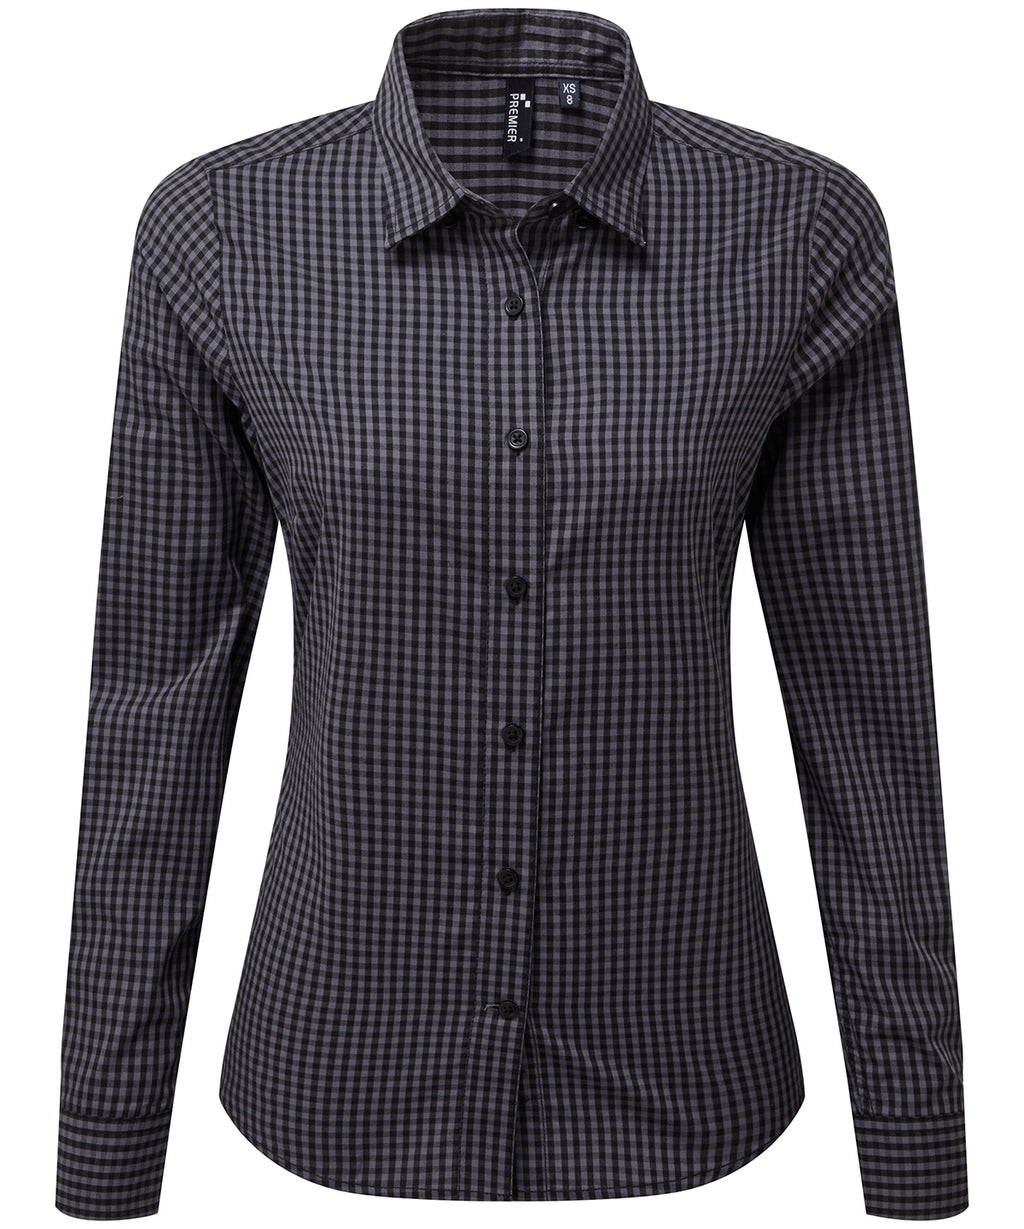 Womens Gingham Check Long Sleeve Shirt - Steel/Black